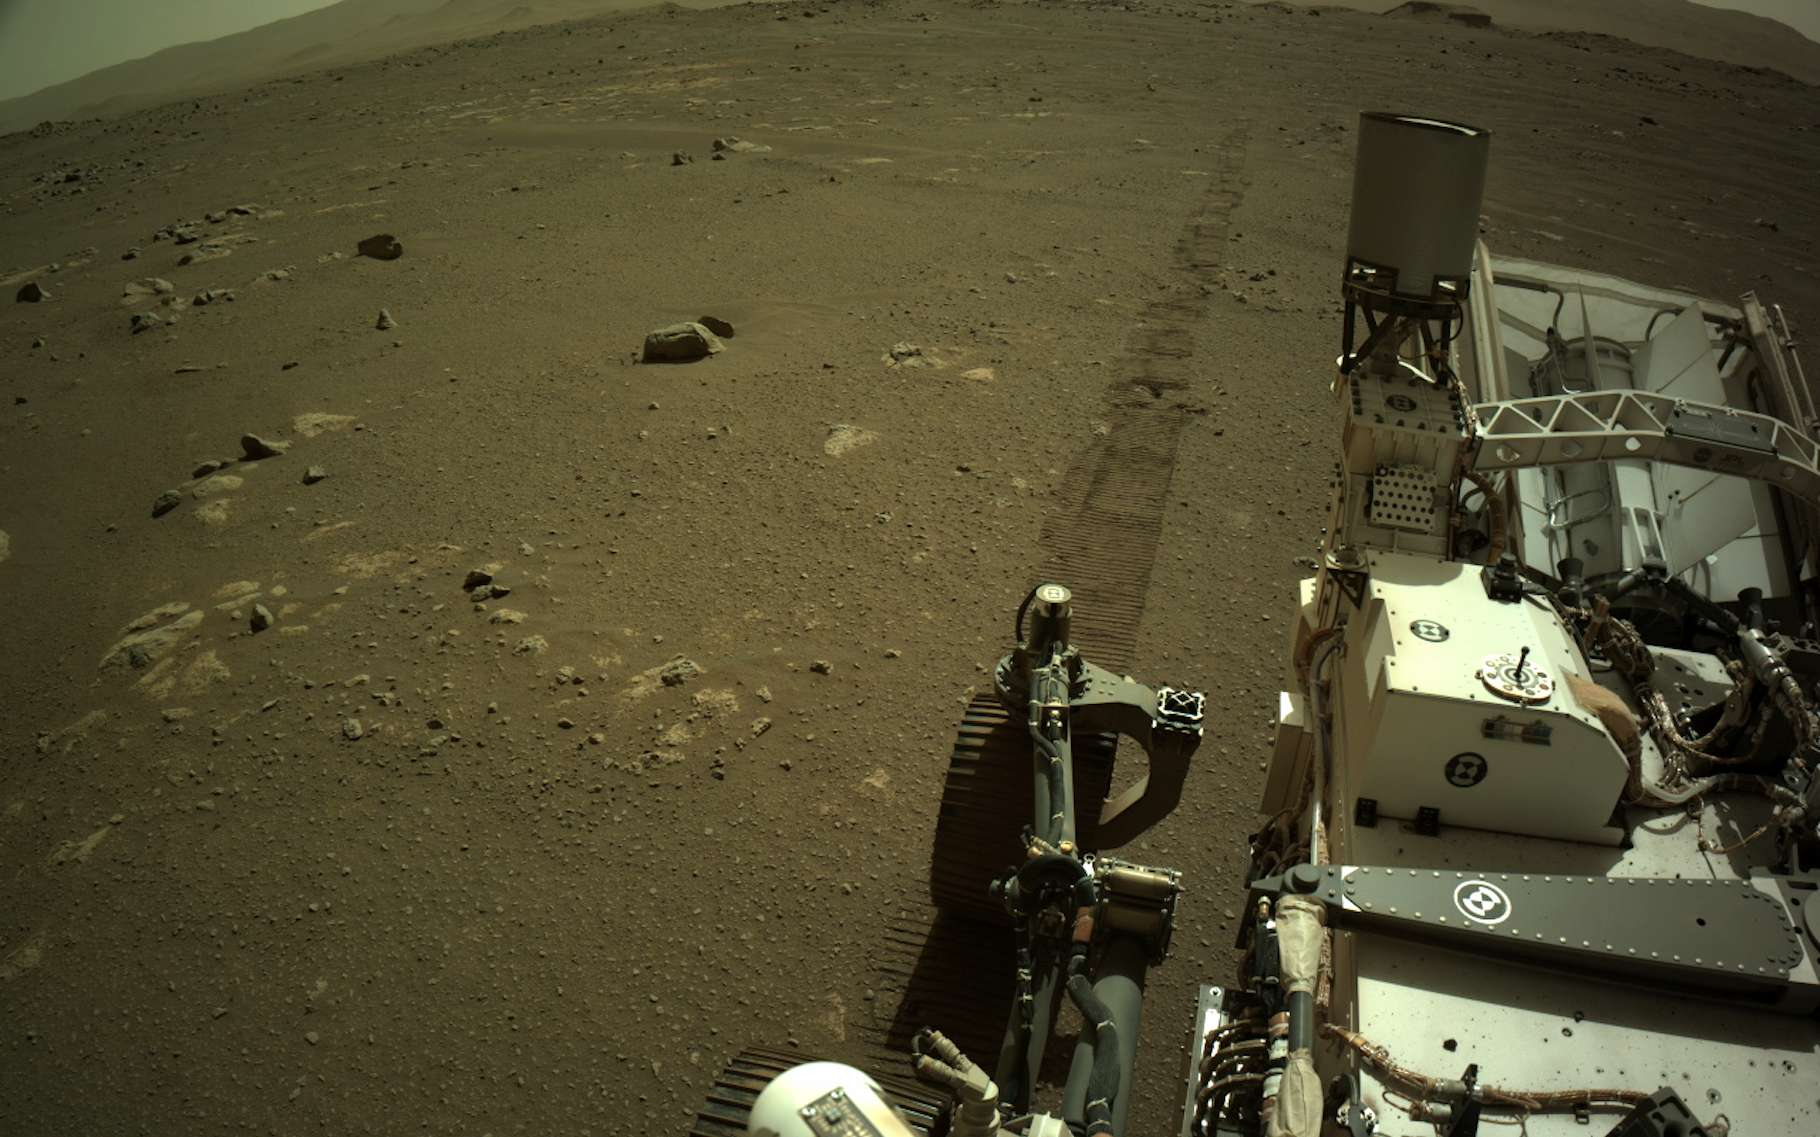 On Mars with persistence: 16 minutes of recorded Rovers